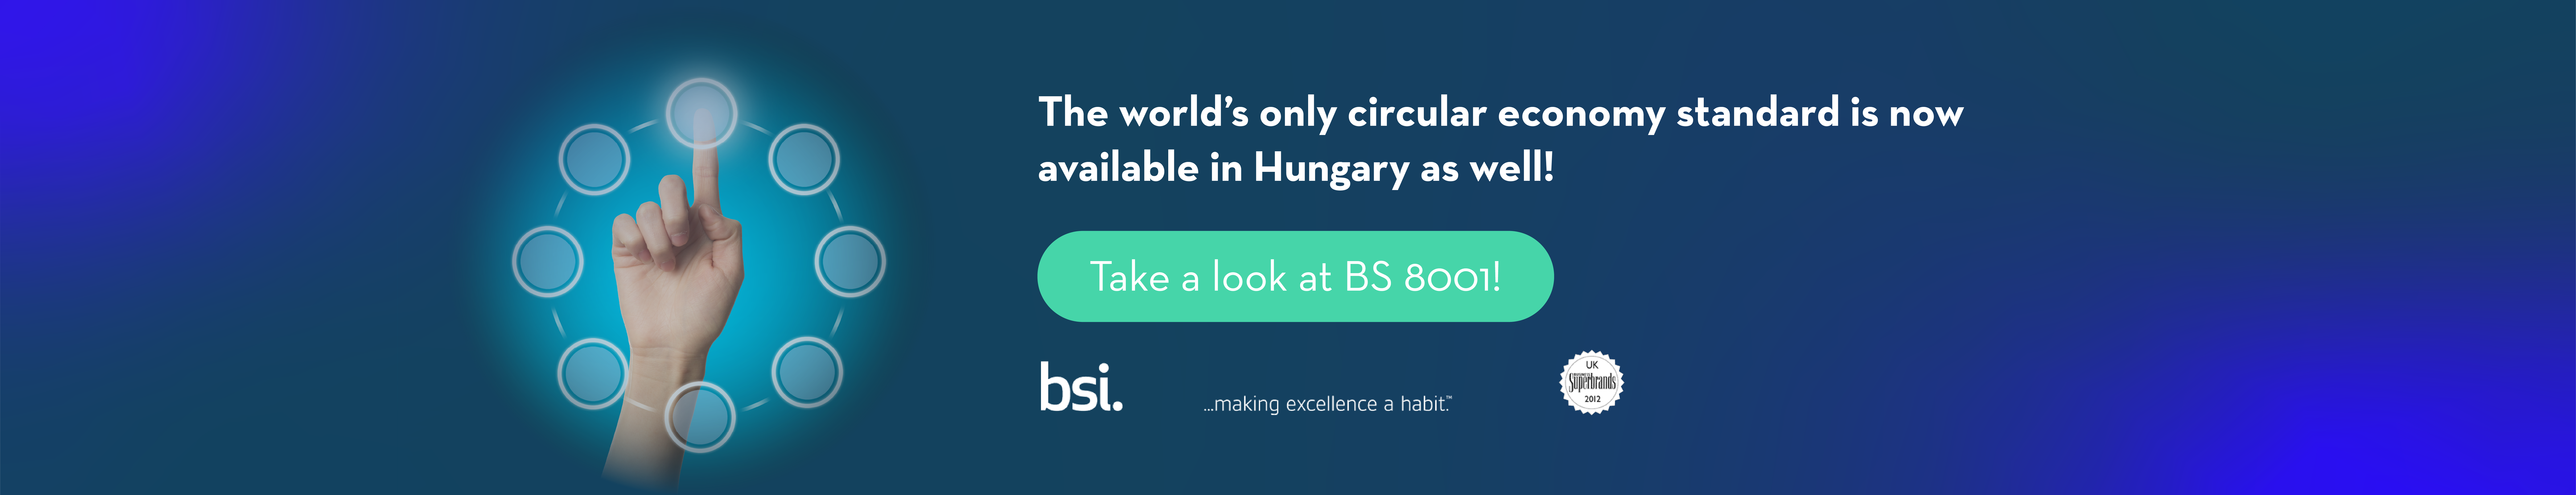 The world's only circular economy standard is now available in Hungary as well!